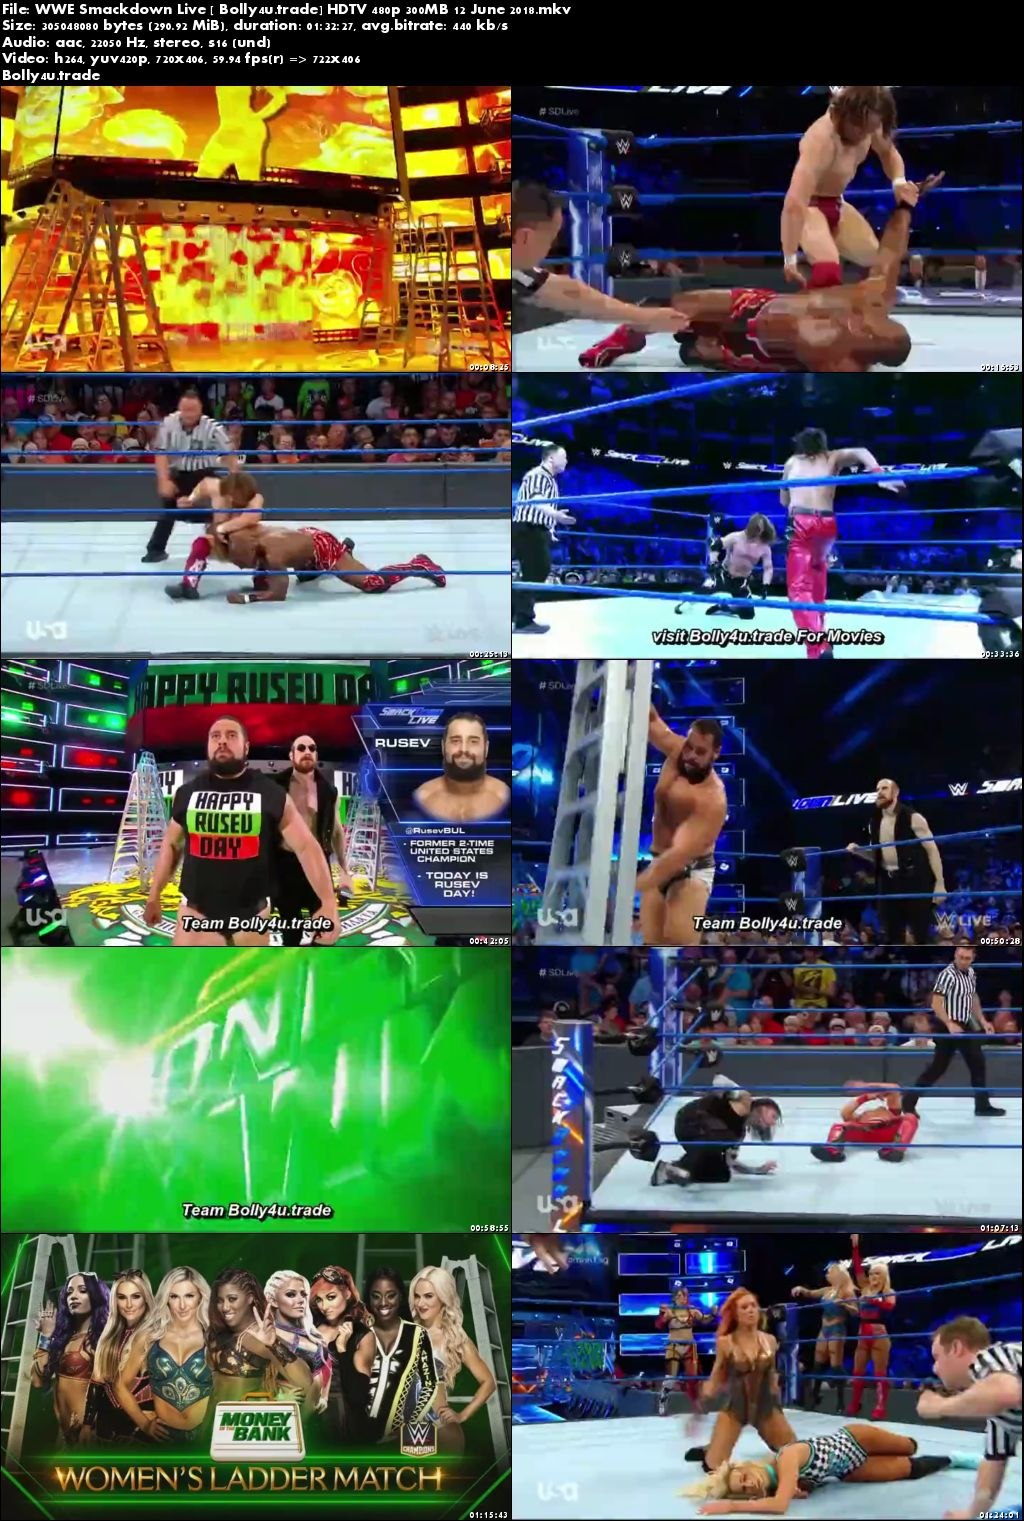 WWE Smackdown Live HDTV 480p 300MB 12 June 2018 Download